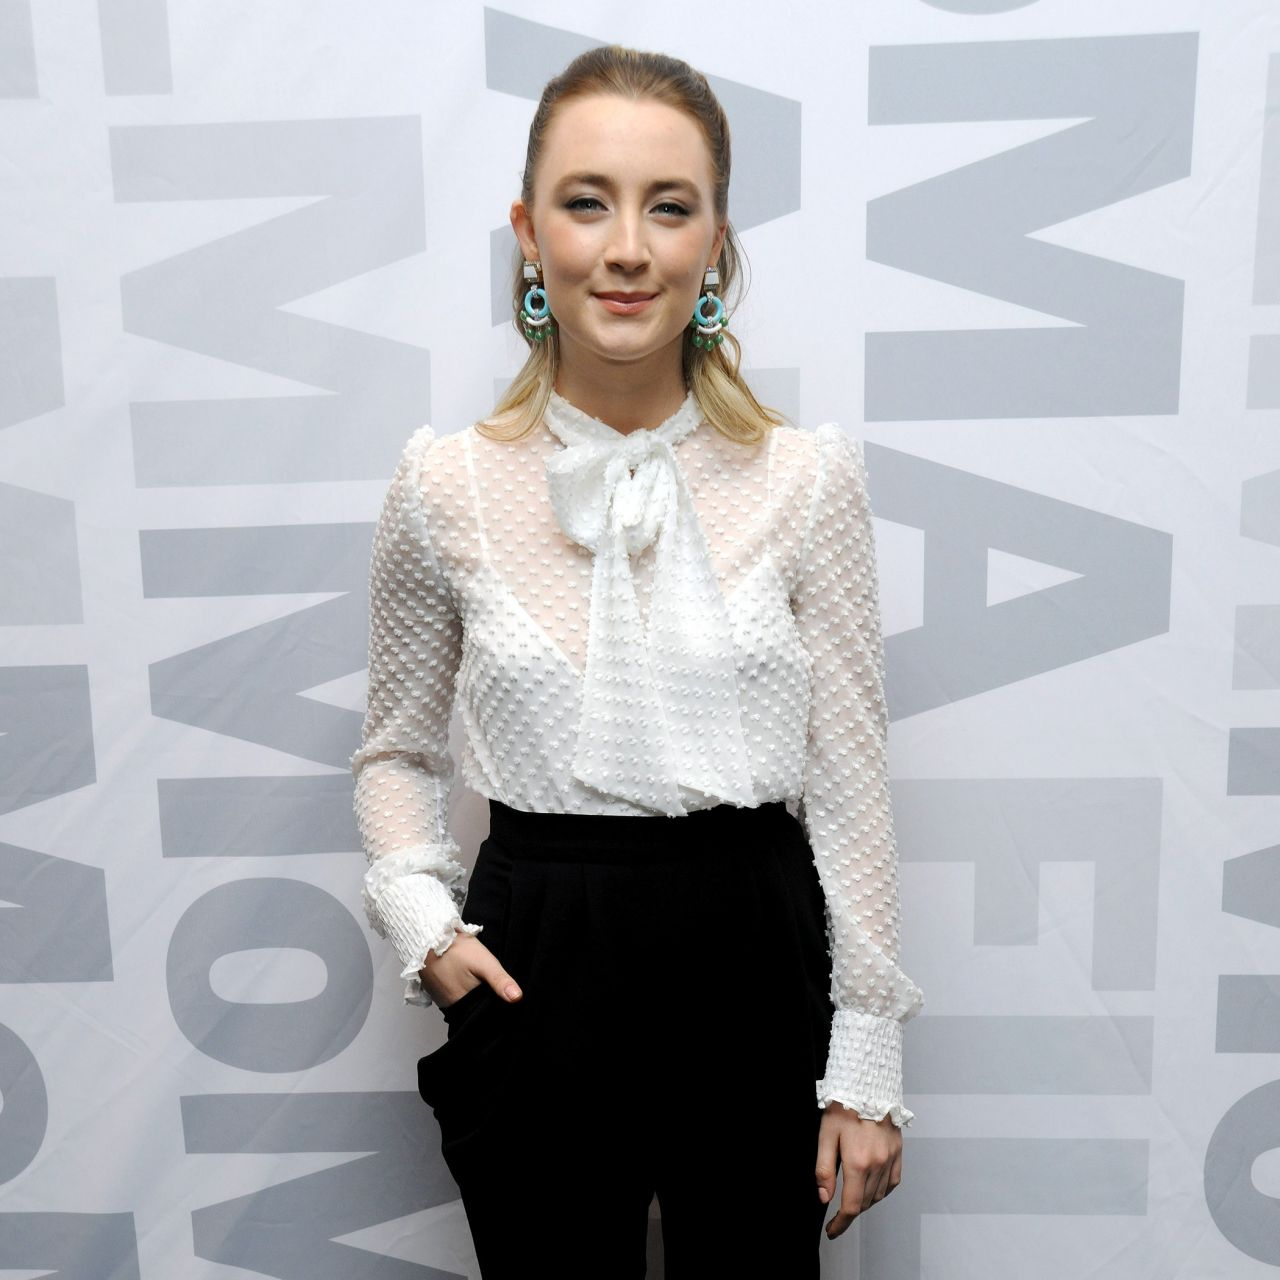 saoirse-ronan-brooklyn-screening-in-the-museum-of-modern-art-in-new-york-city-2